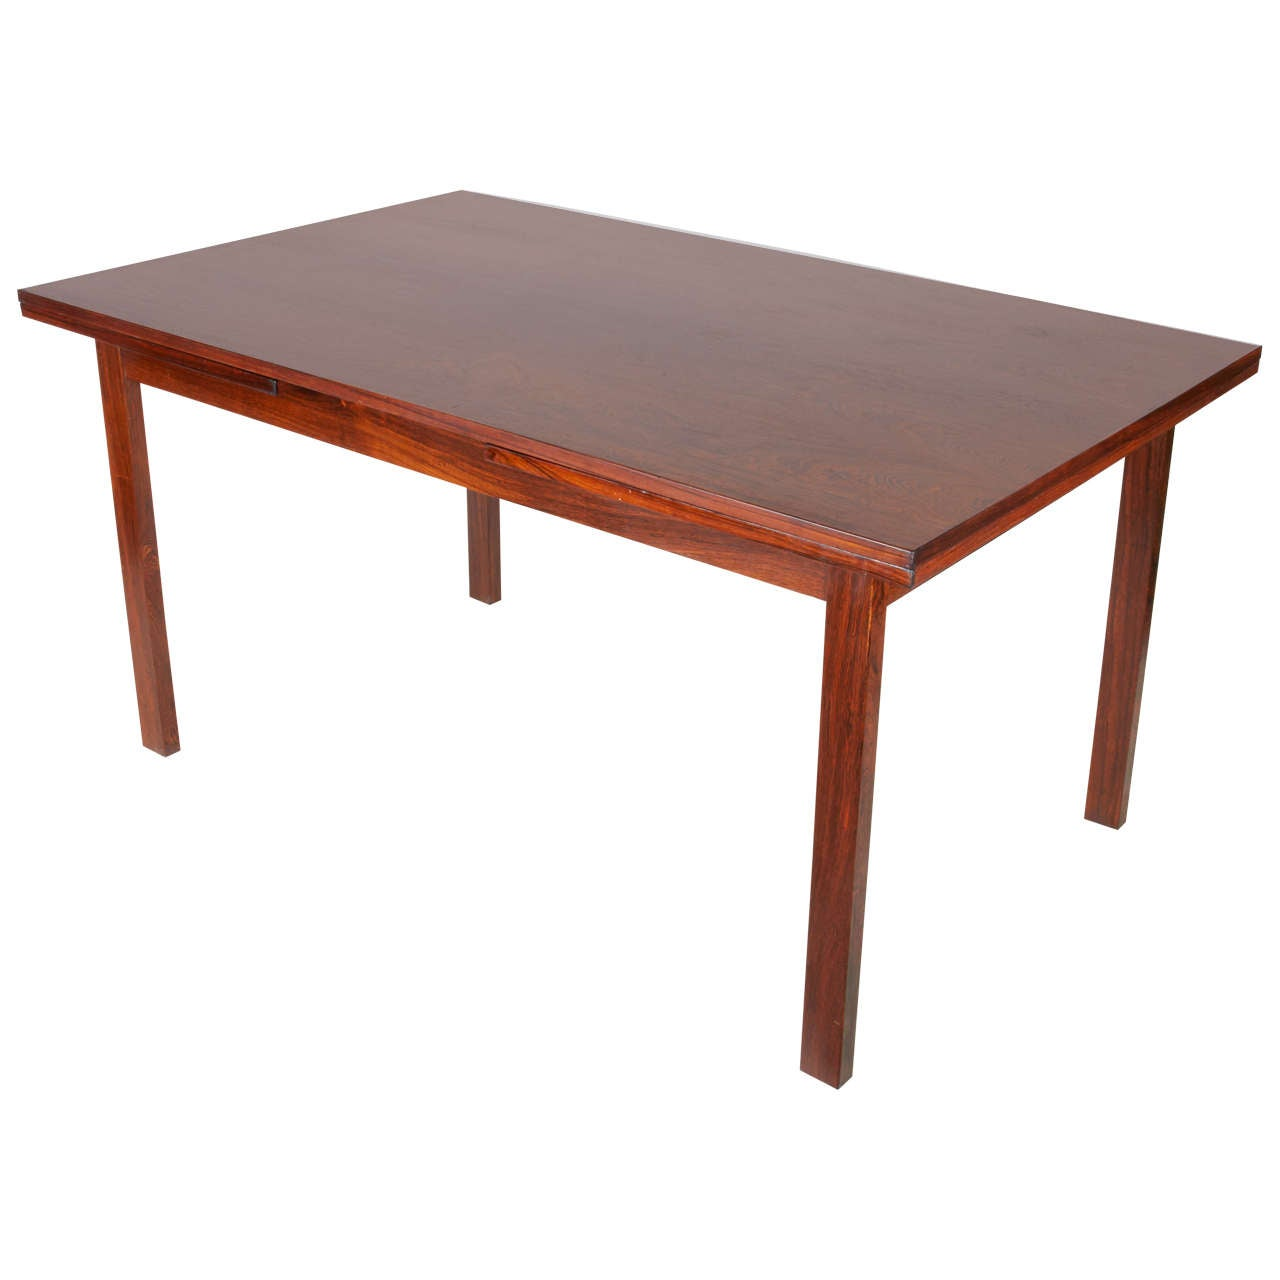 Rosewood Dining Table For Sale at 1stdibs : X from www.1stdibs.com size 1280 x 1280 jpeg 48kB